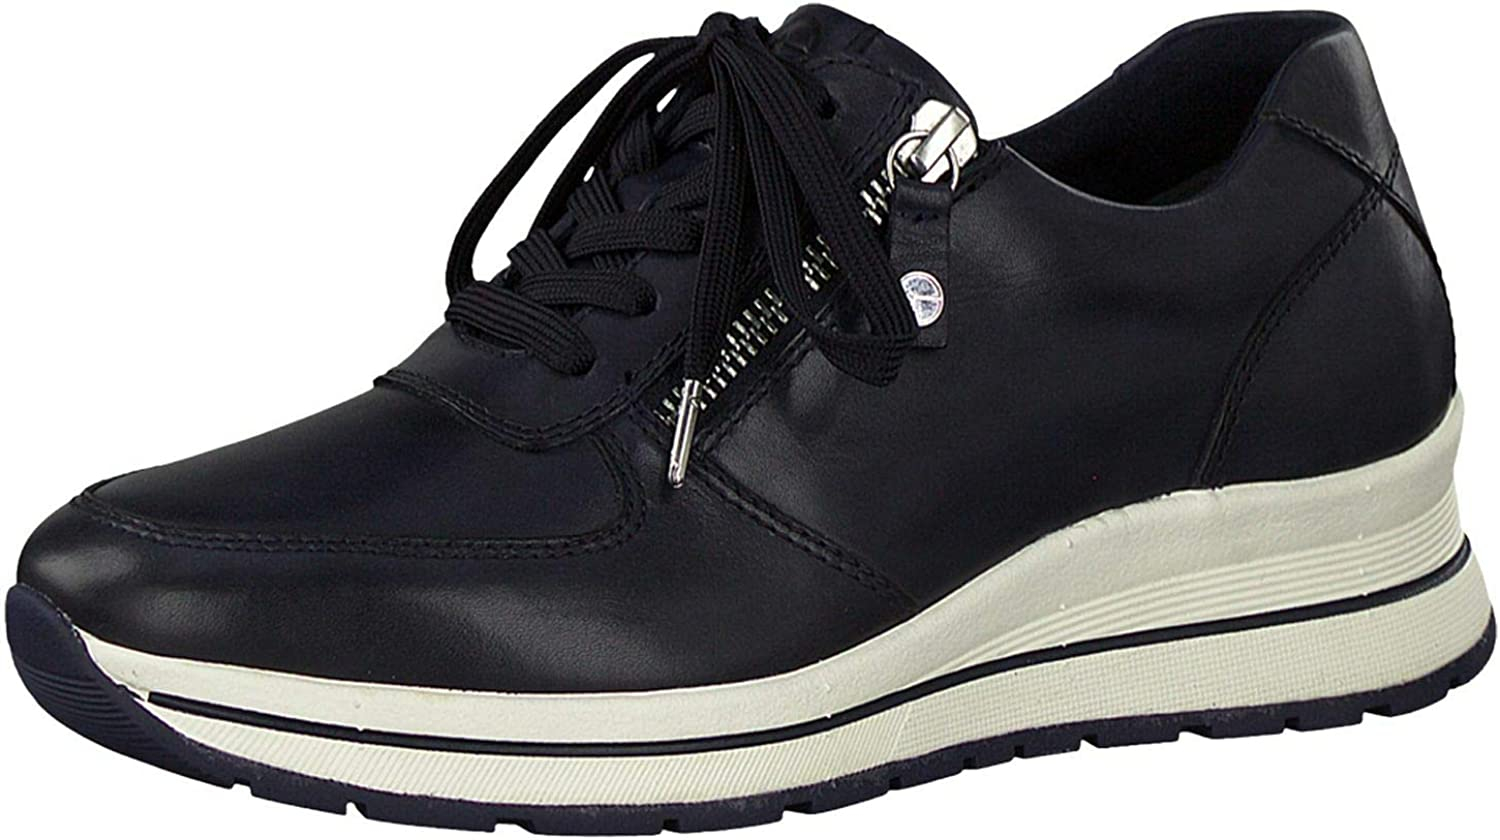 Max 88% OFF Tamaris Women's Low-Top Sneakers Safety and trust